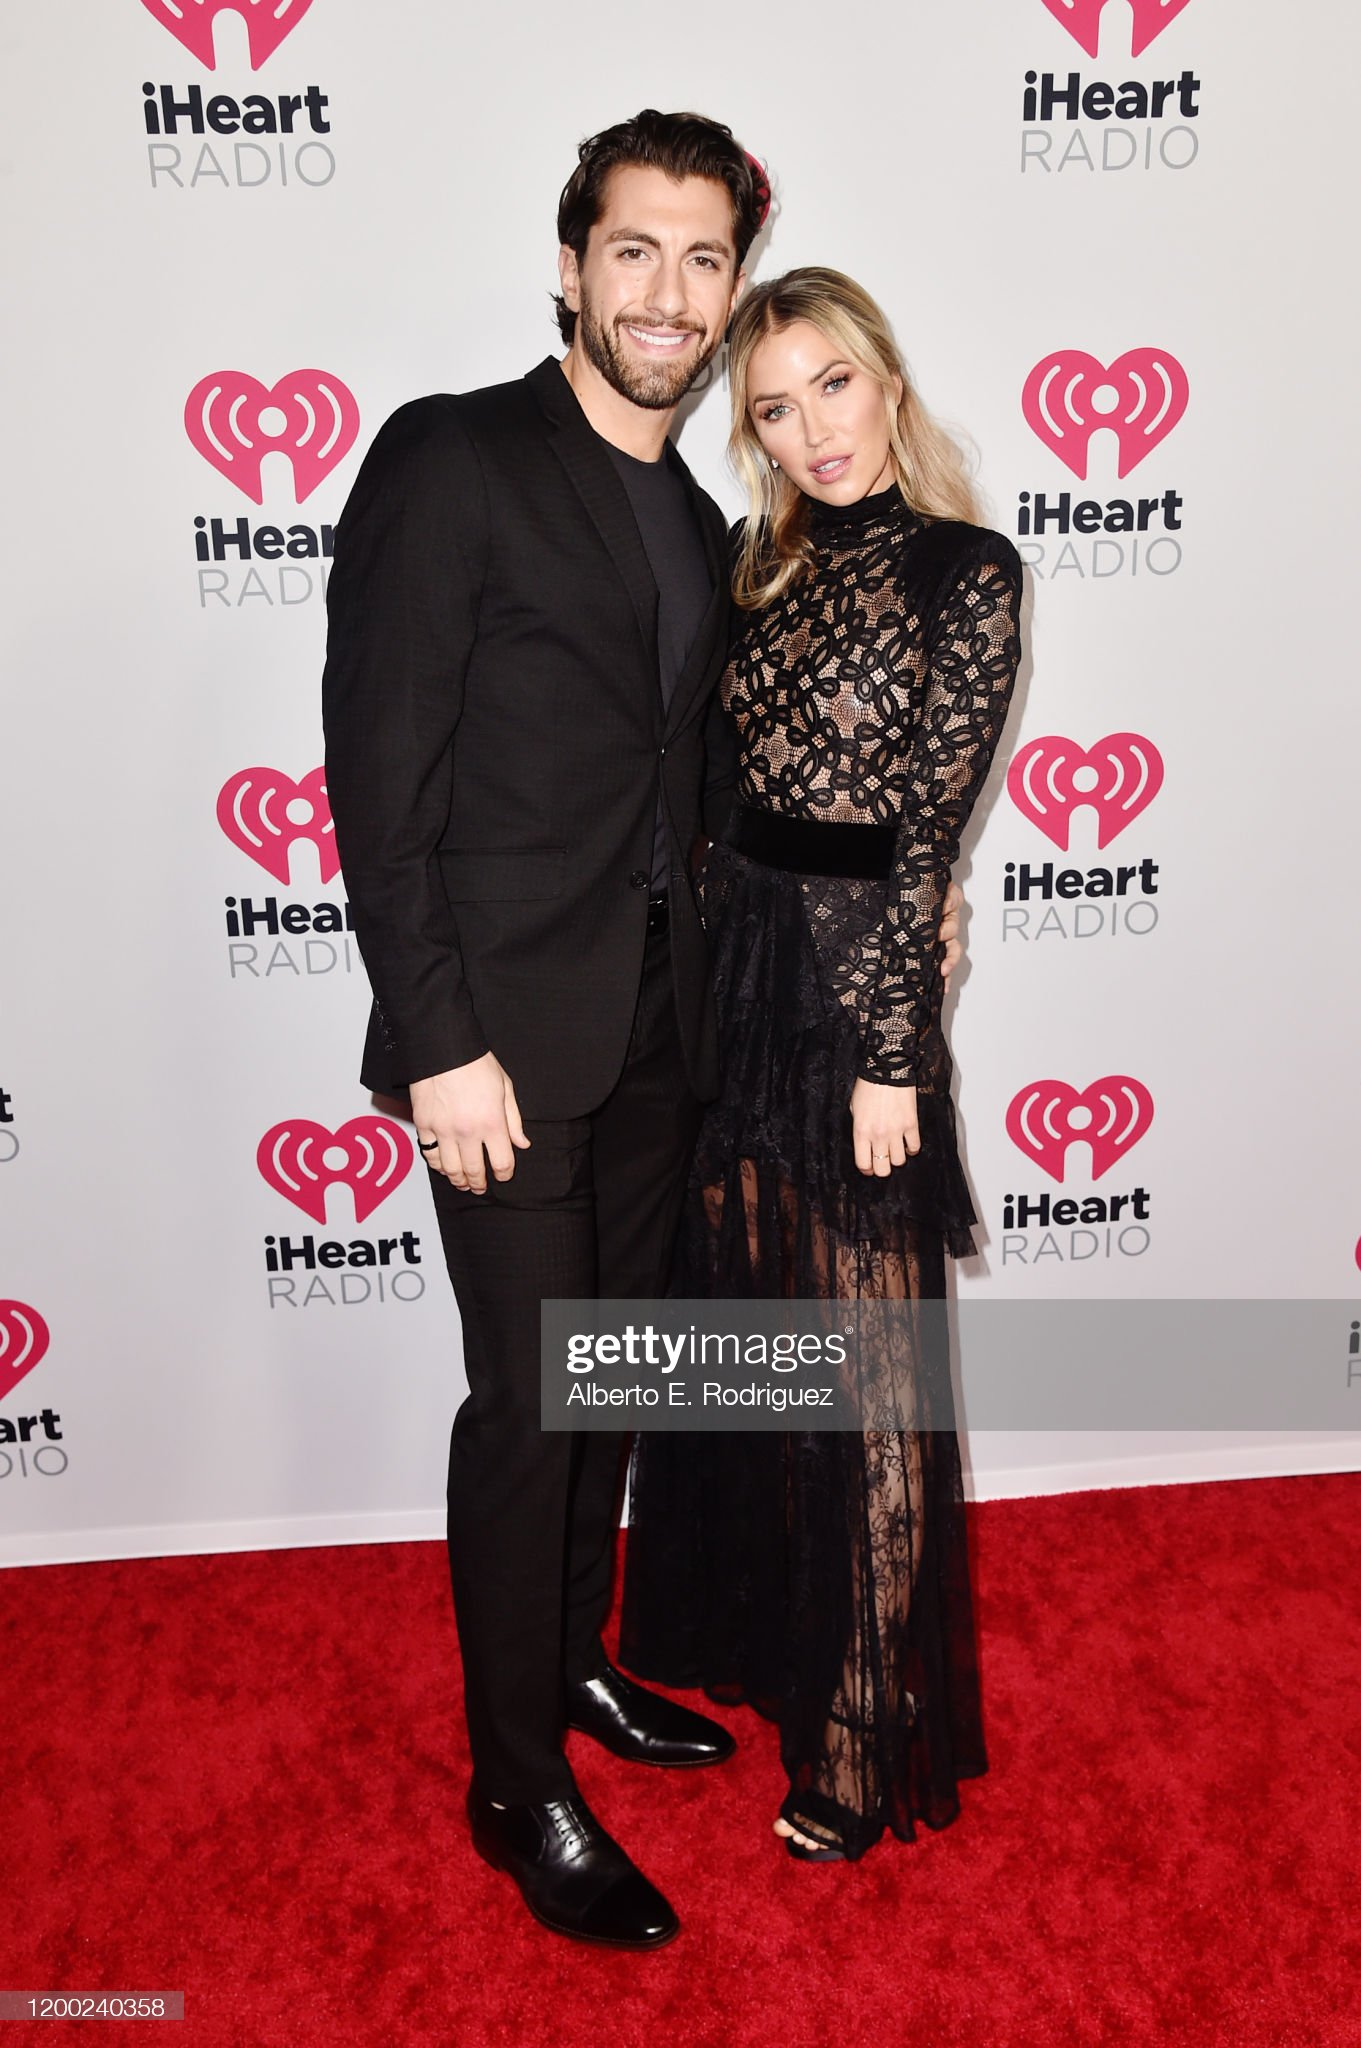 Kaitlyn Bristowe - Jason Tartick - FAN Forum - Discussion  - Page 51 Jason-tartick-and-kaitlyn-bristowe-attend-the-2020-iheartradio-at-picture-id1200240358?s=2048x2048